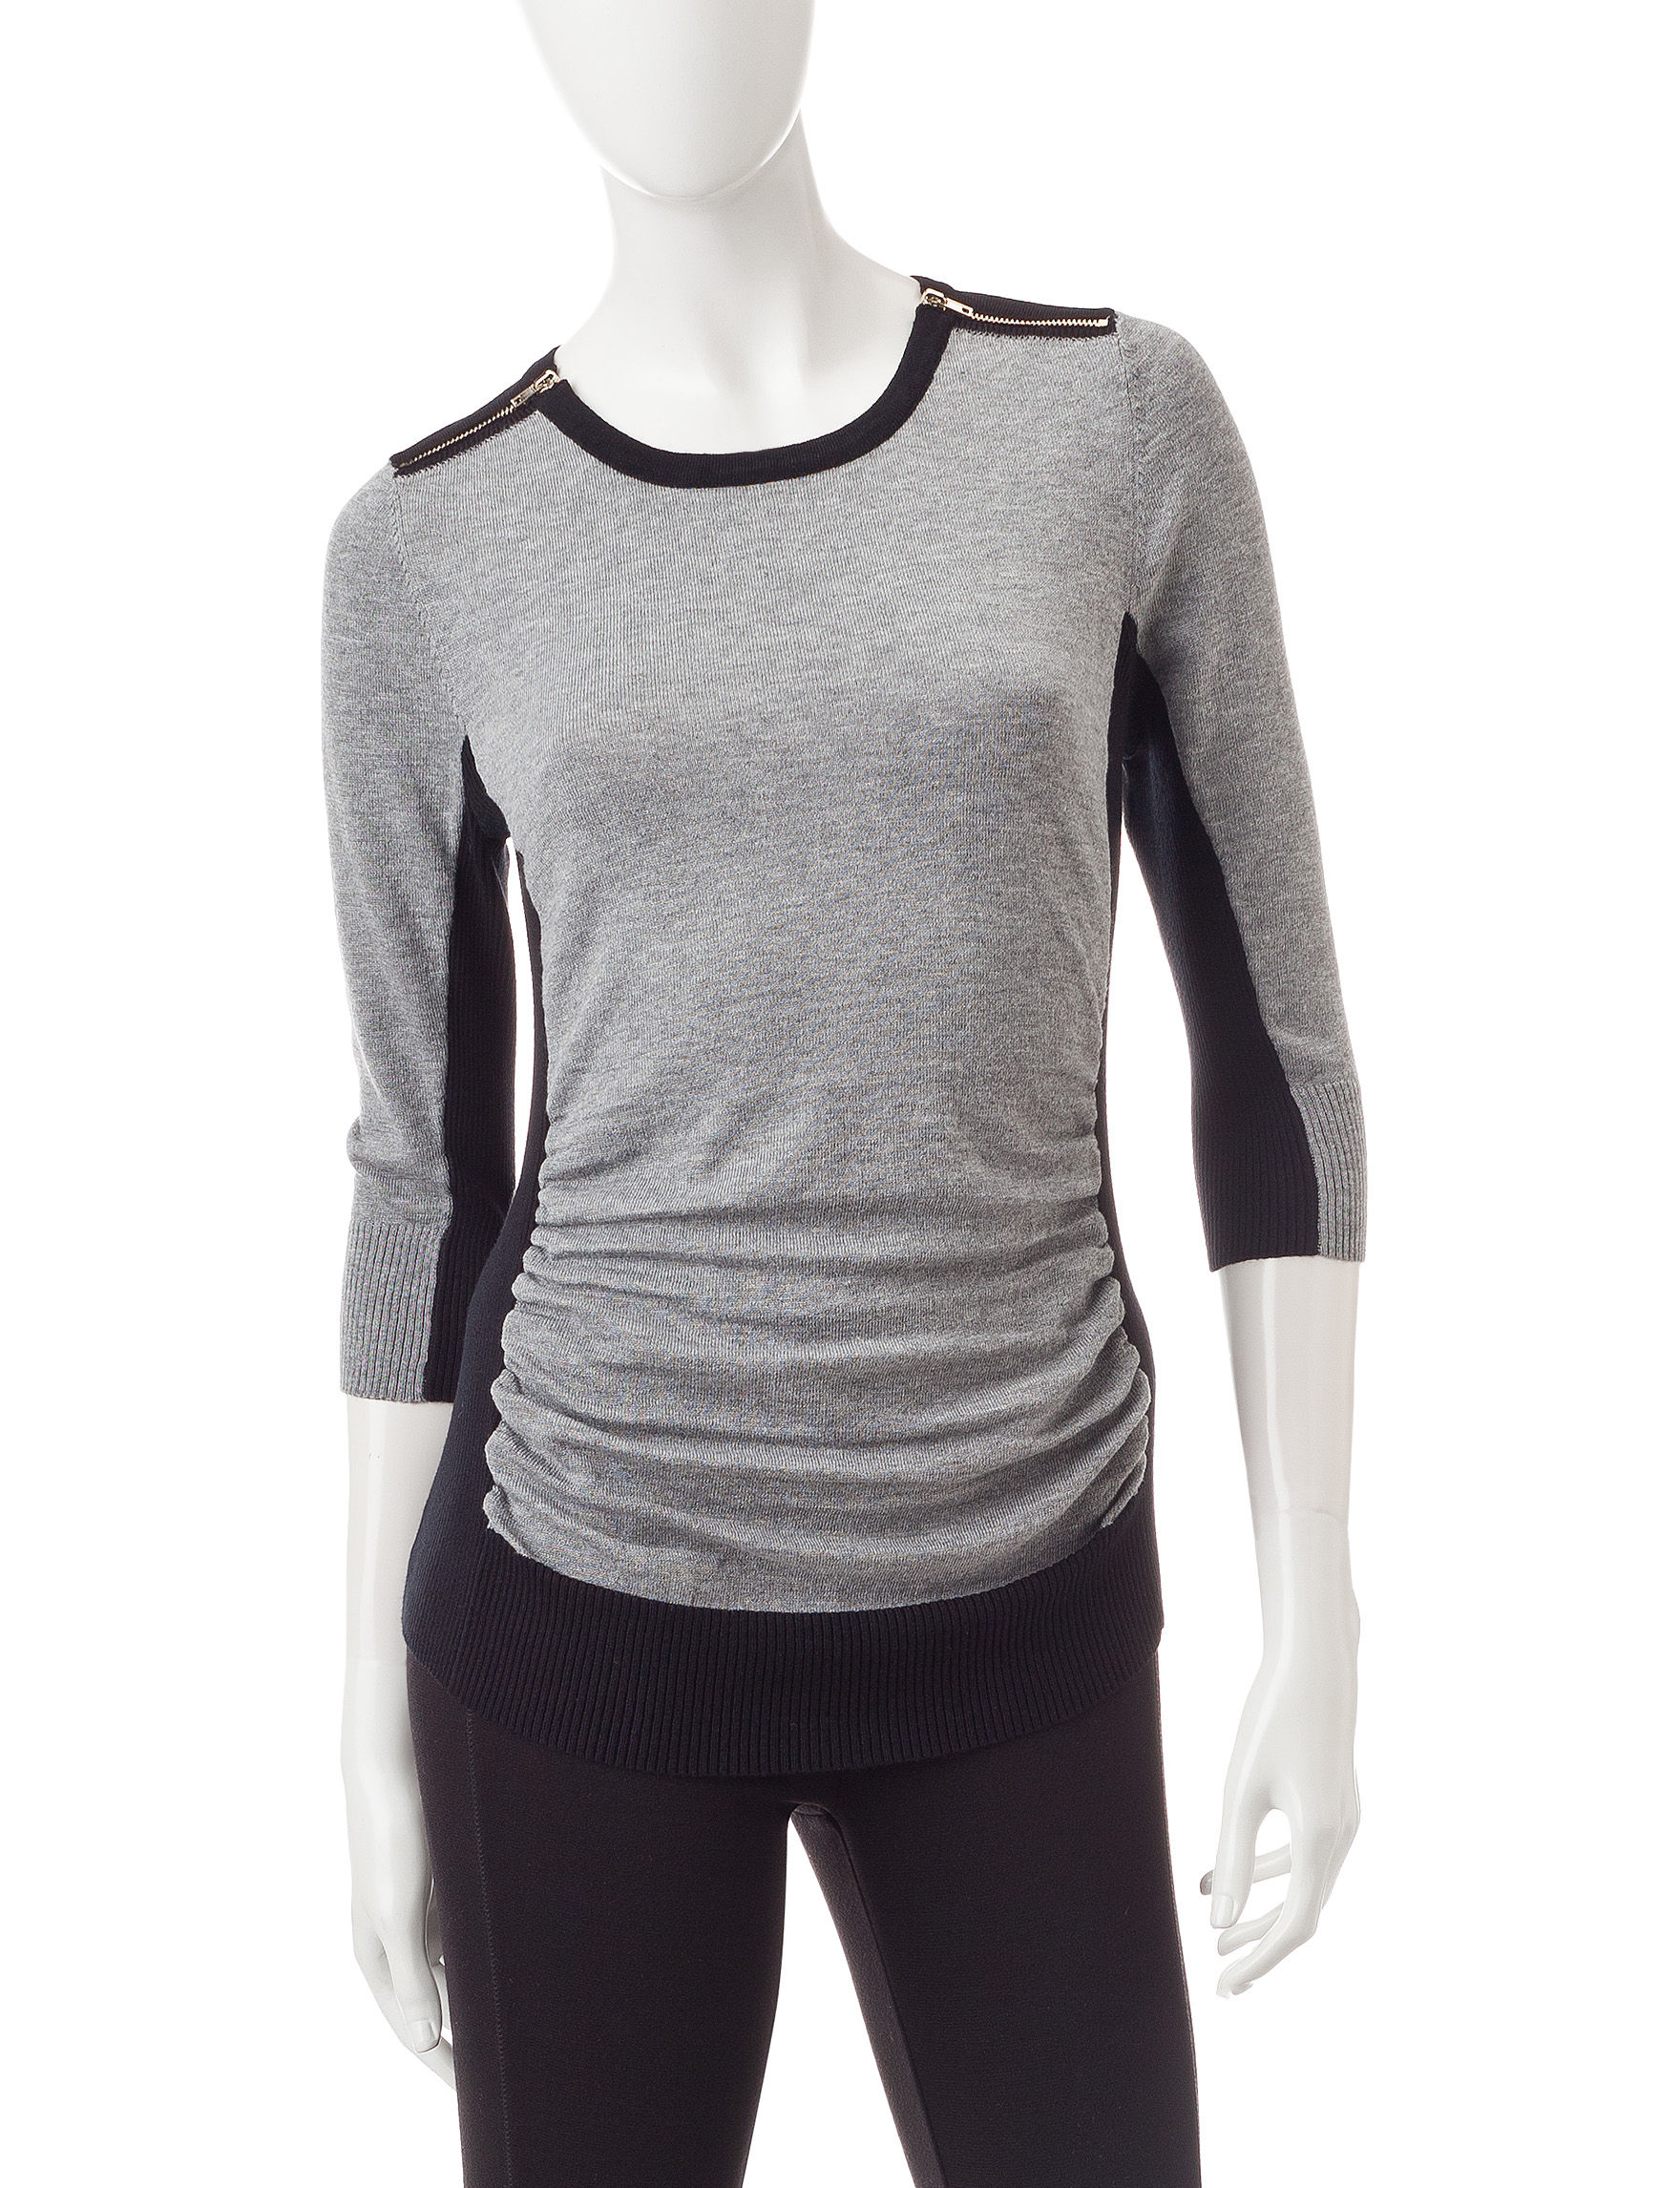 A. Byer Heather Grey Pull-overs Sweaters